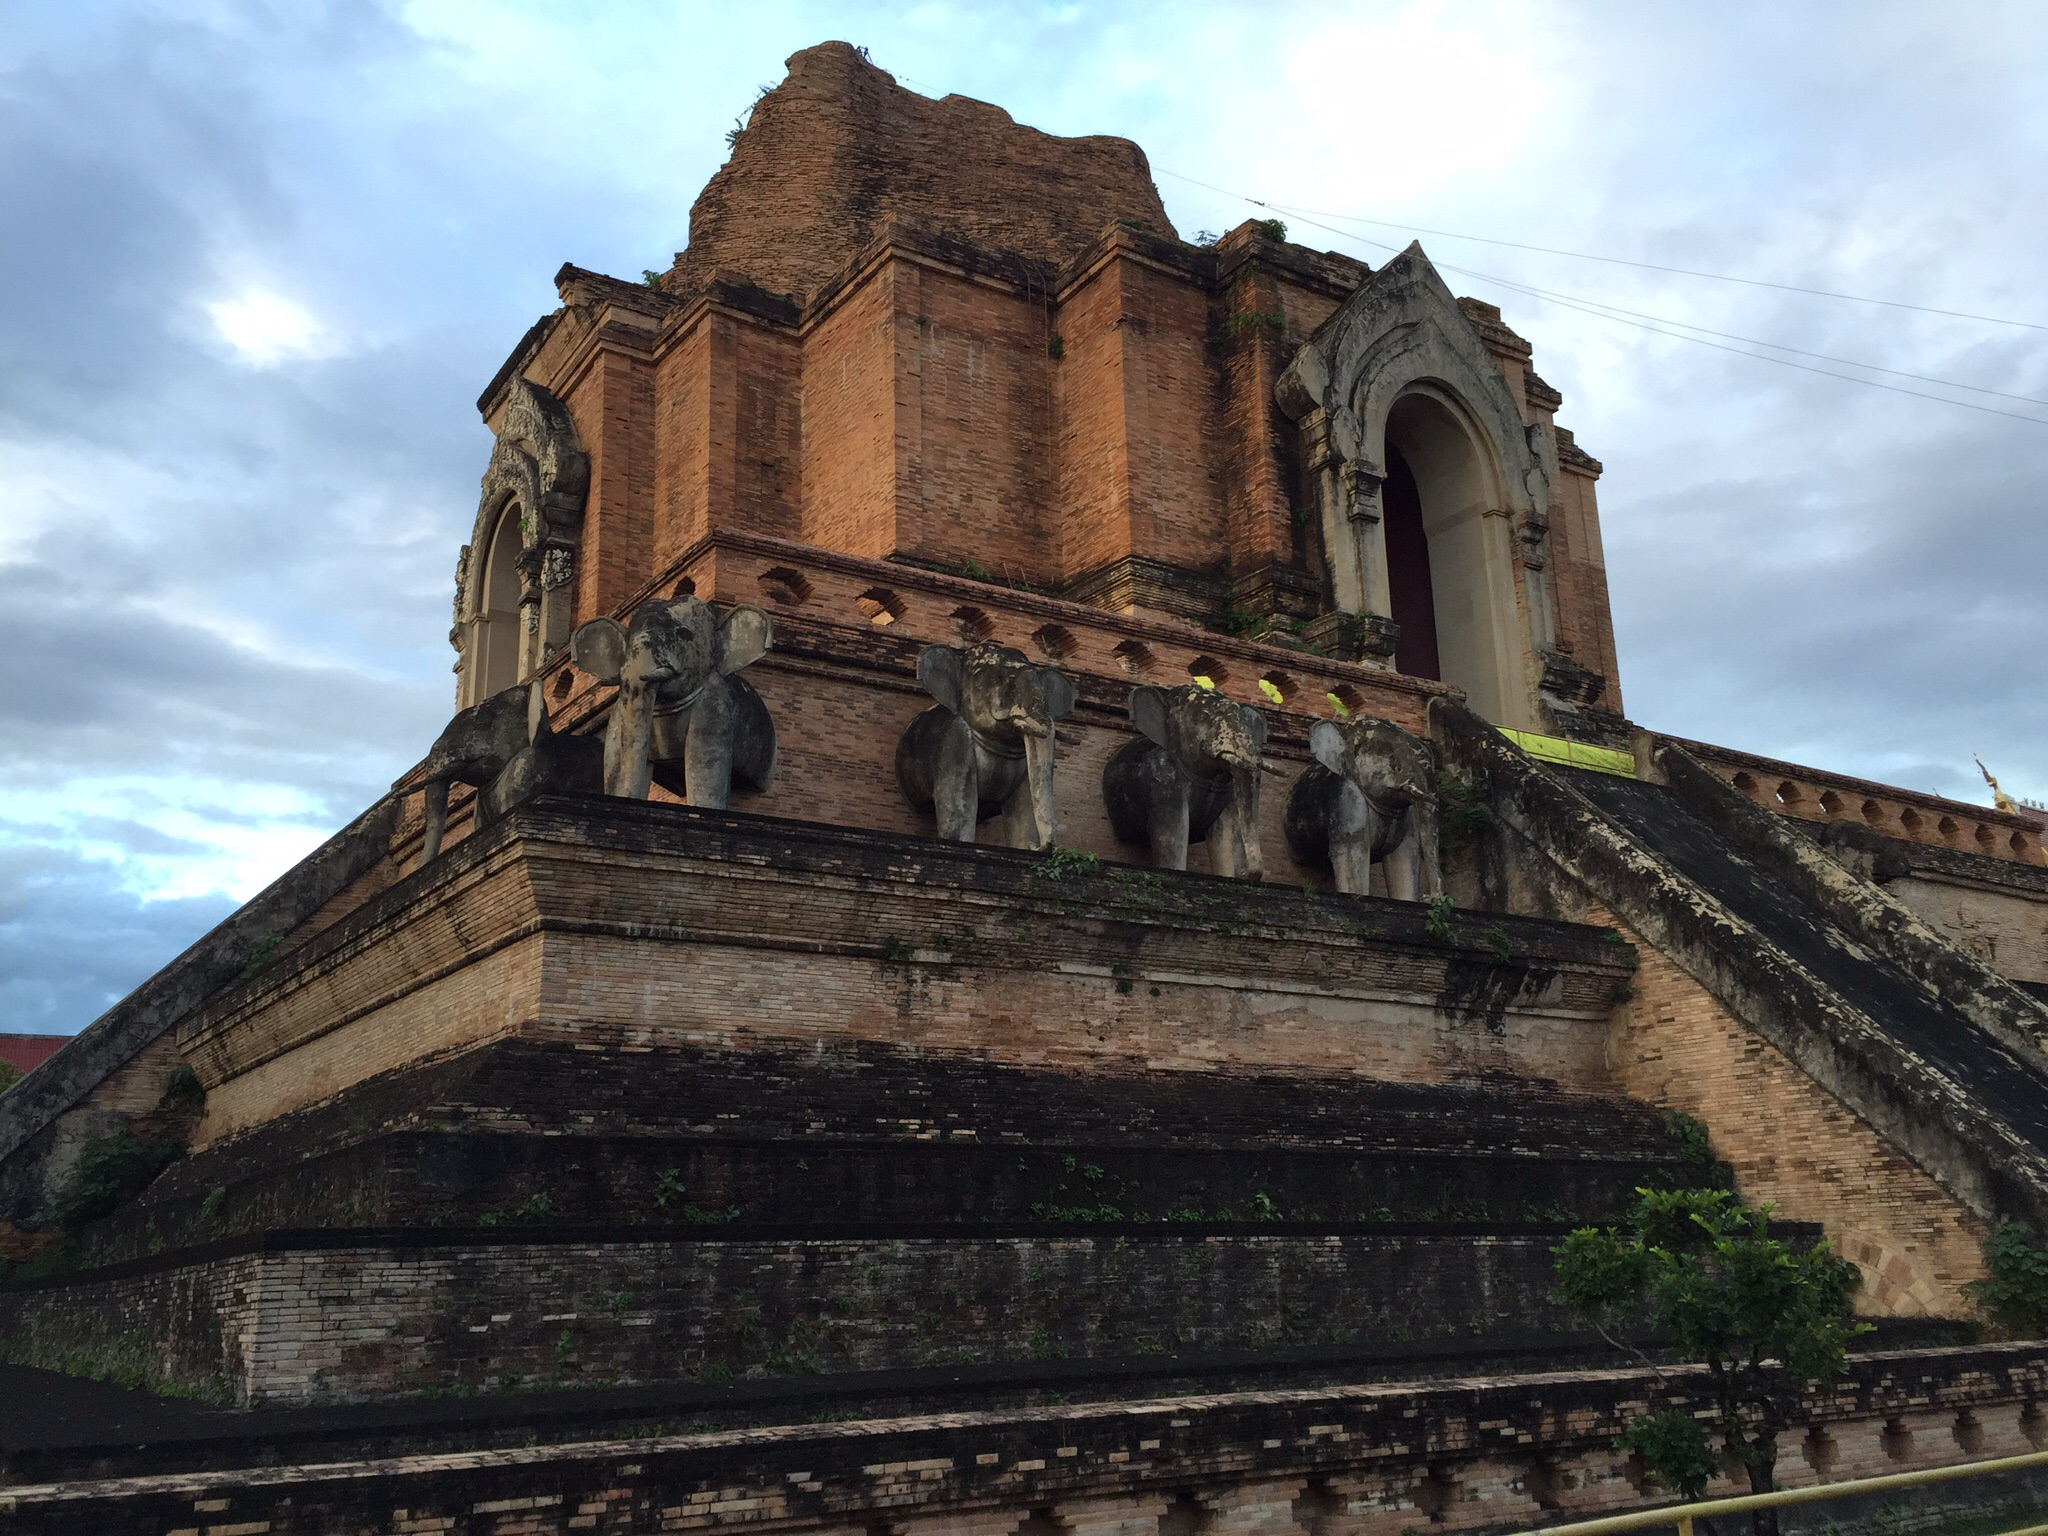 Wat Chedi Luang in Old City Chaing Mai